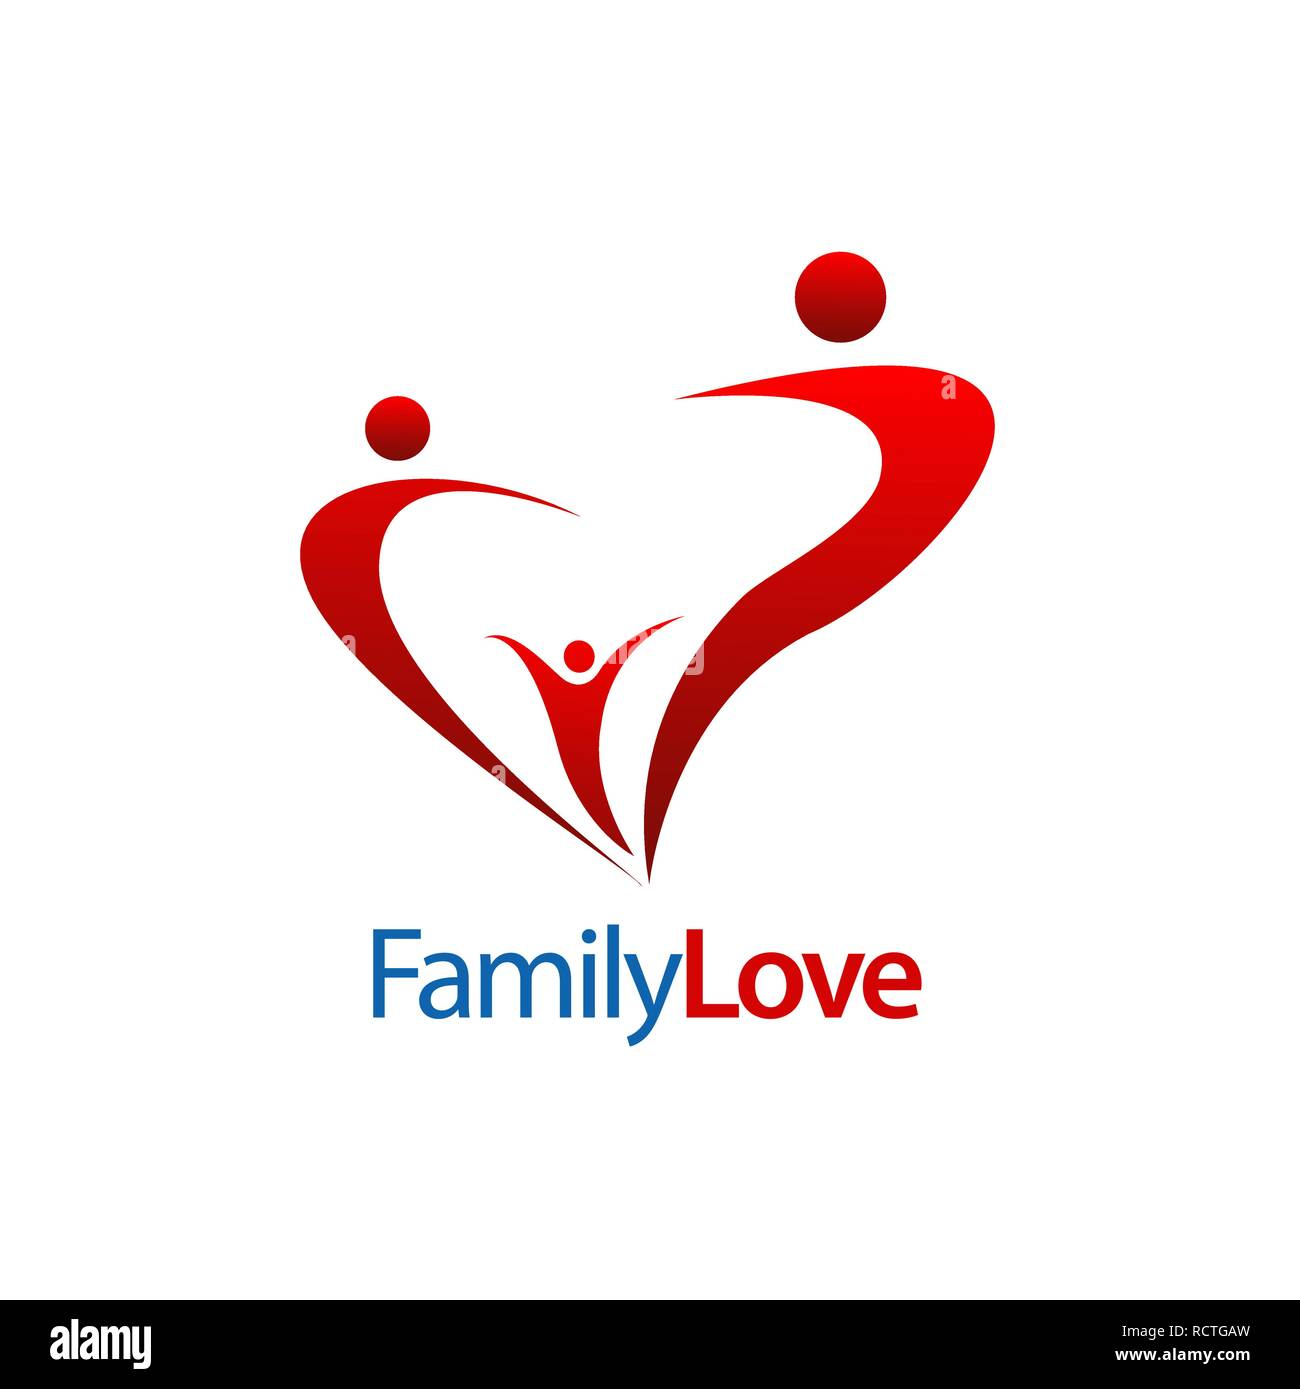 Human character family love logo concept design. Symbol graphic template element vector - Stock Vector